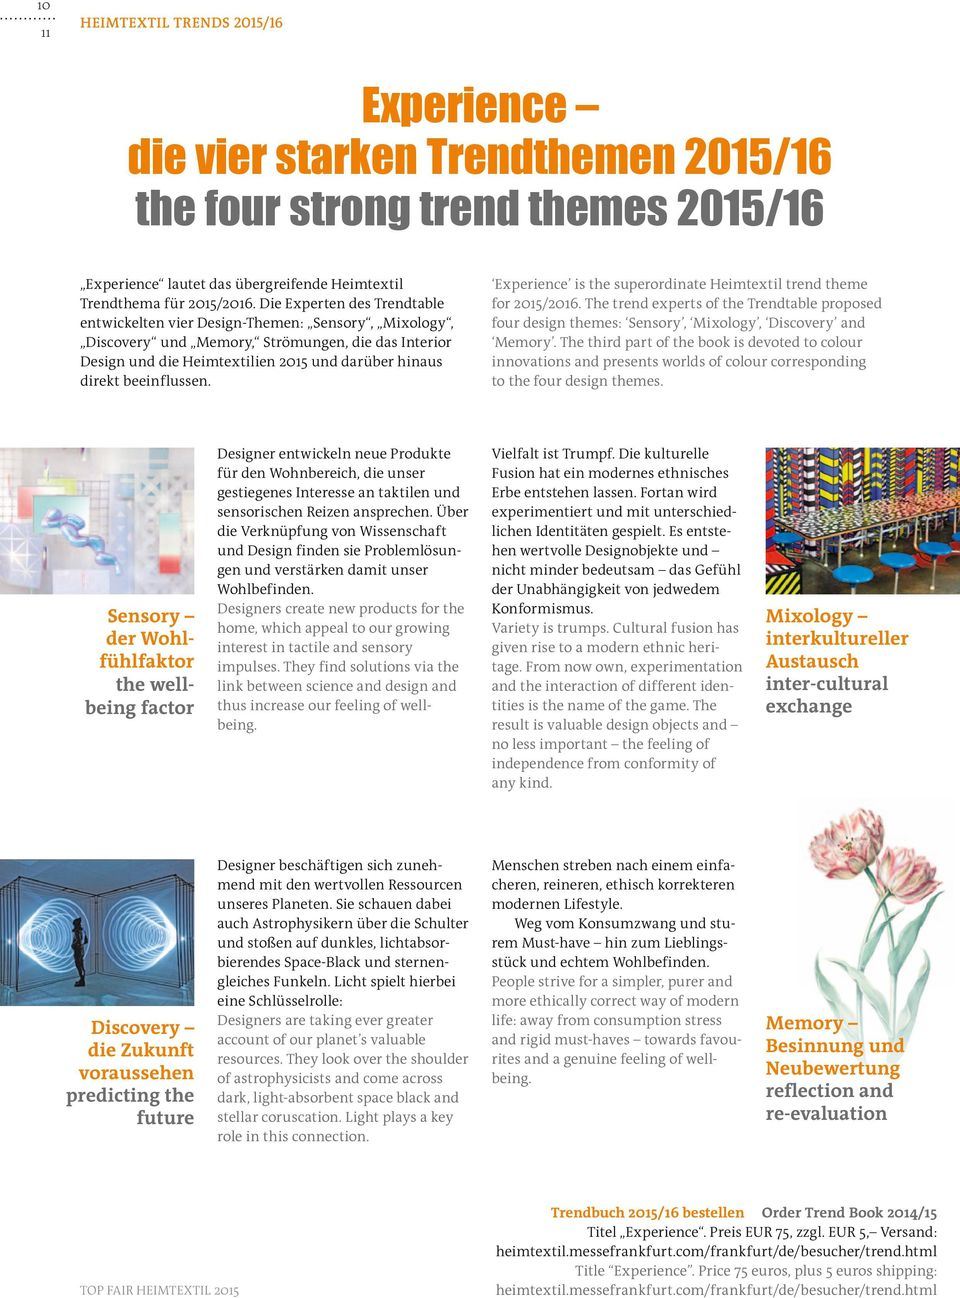 beeinflussen. Sensory der Wohlfühlfaktor the wellbeing factor Discovery die Zukunft voraussehen predicting the future Experience is the superordinate Heimtextil trend theme for 2015/2016.